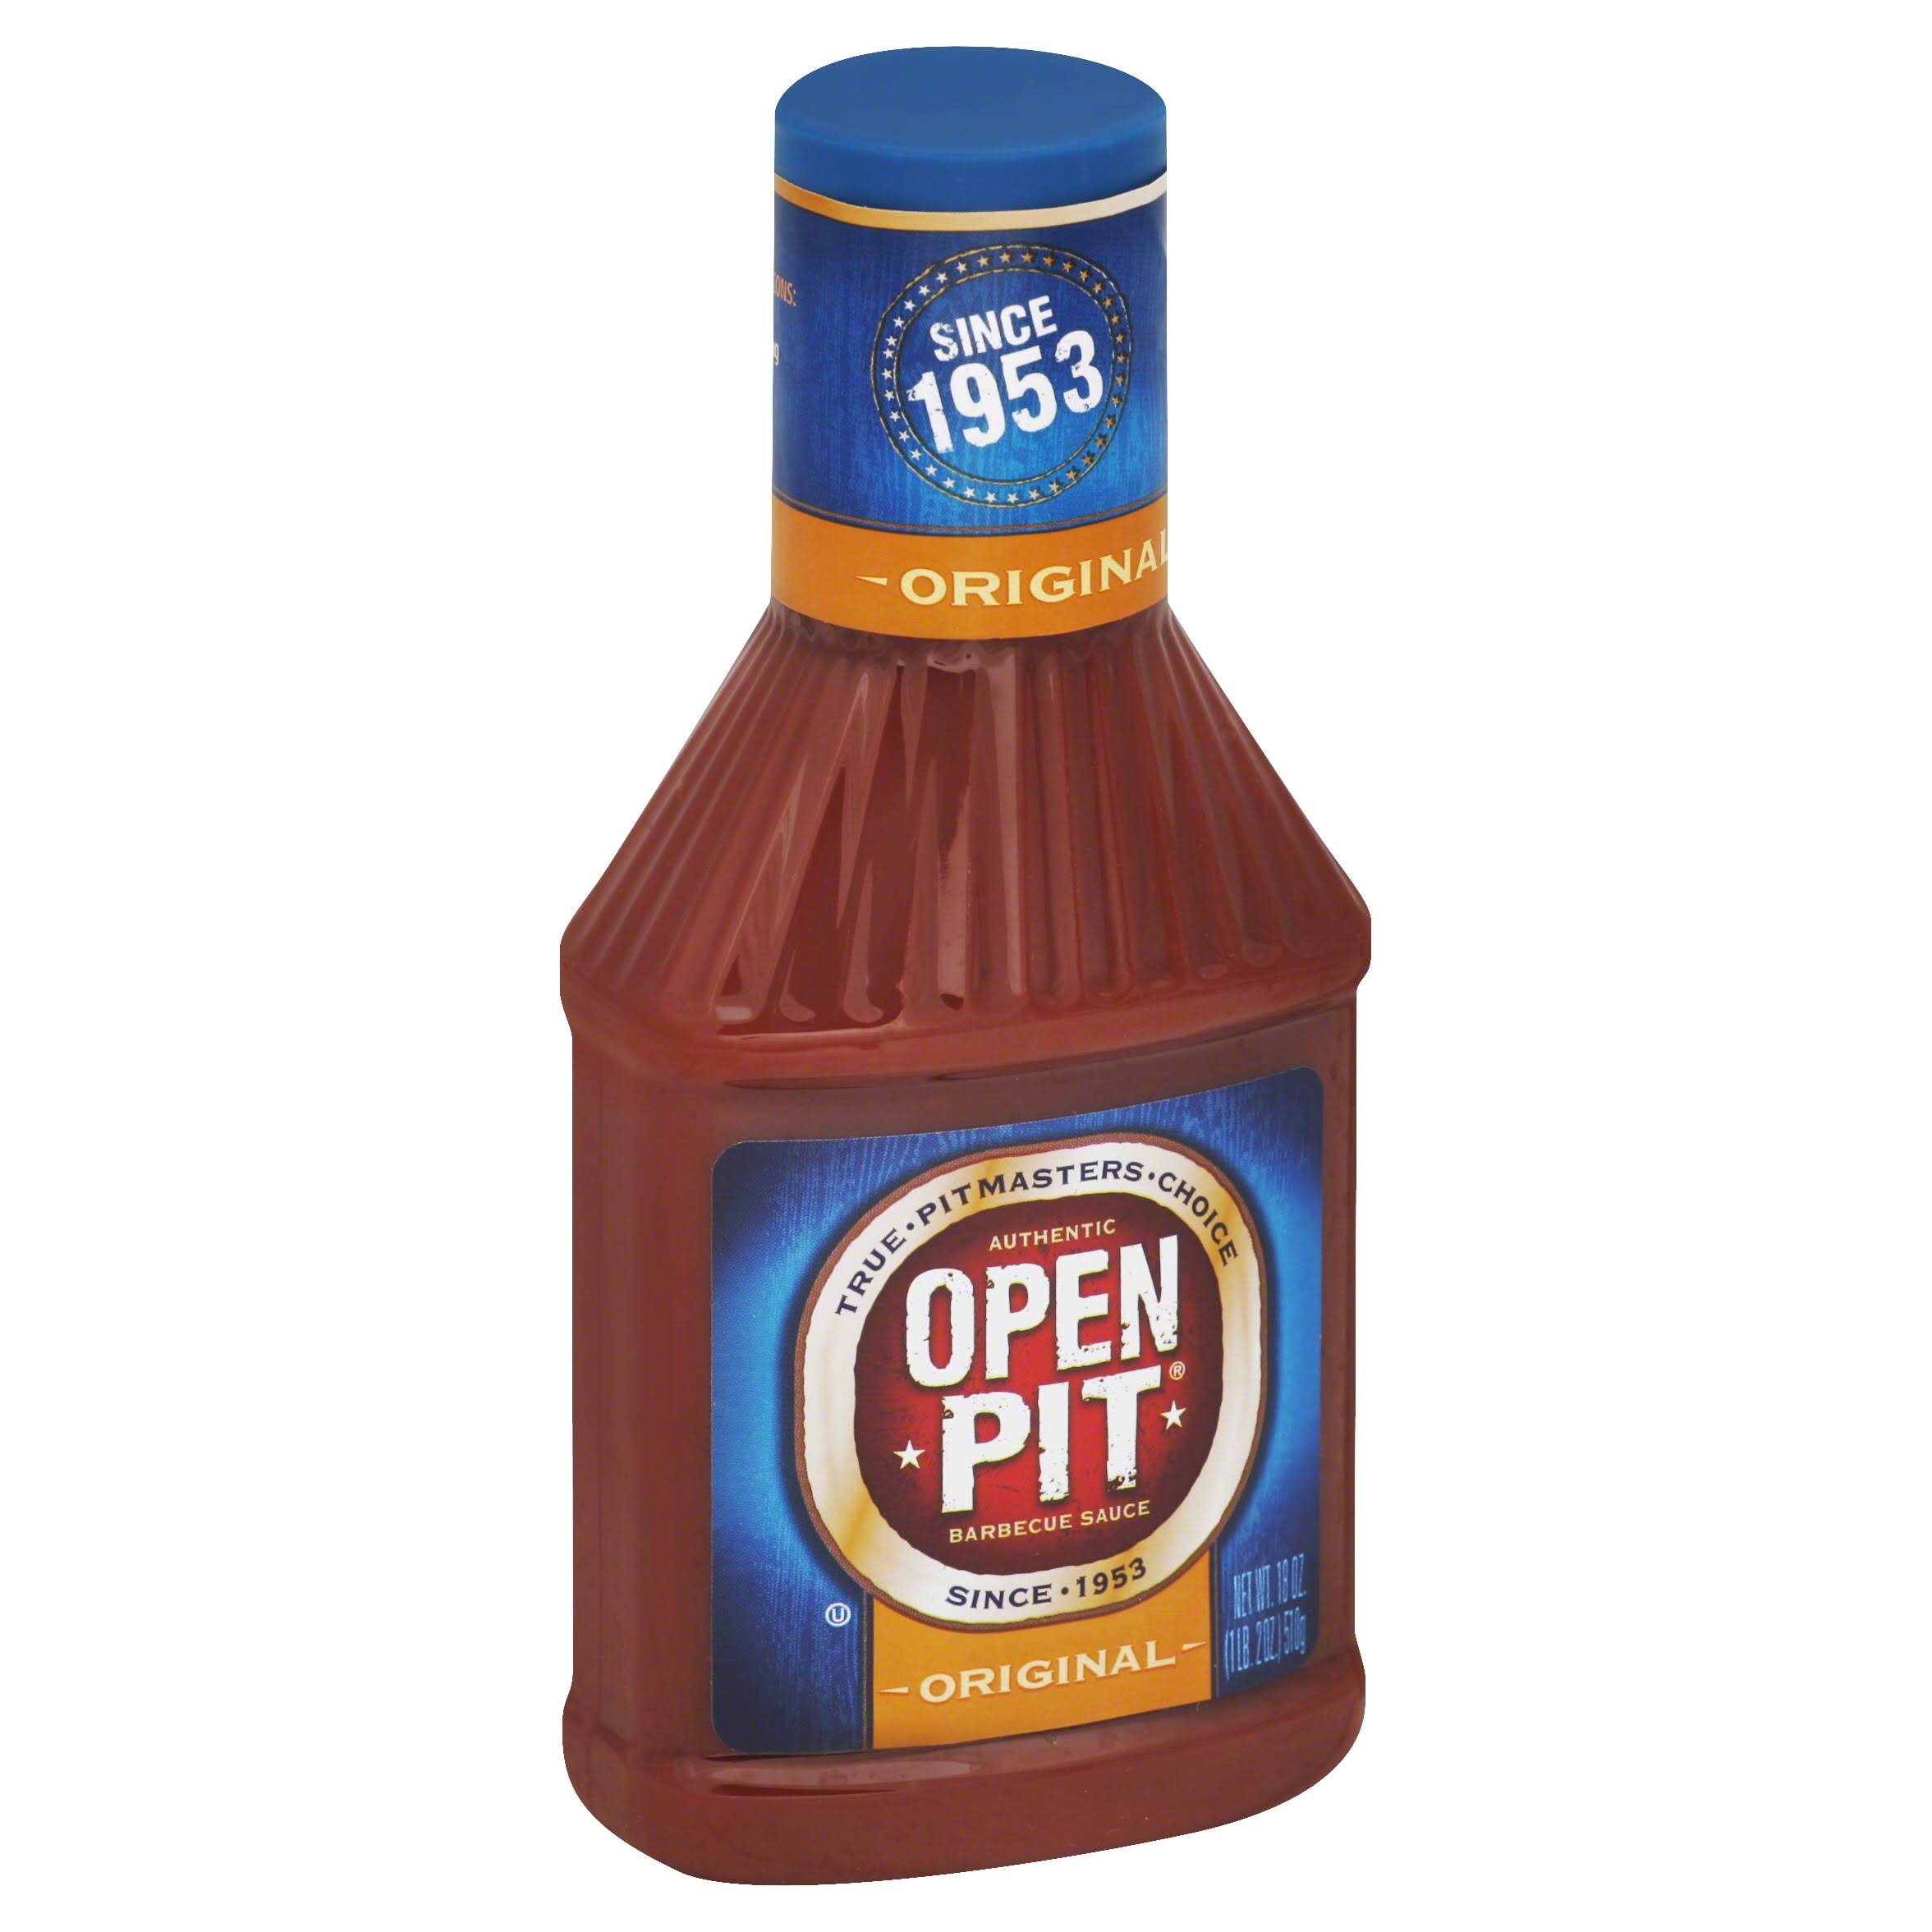 Open Pit Original Barbecue Sauce - 18oz